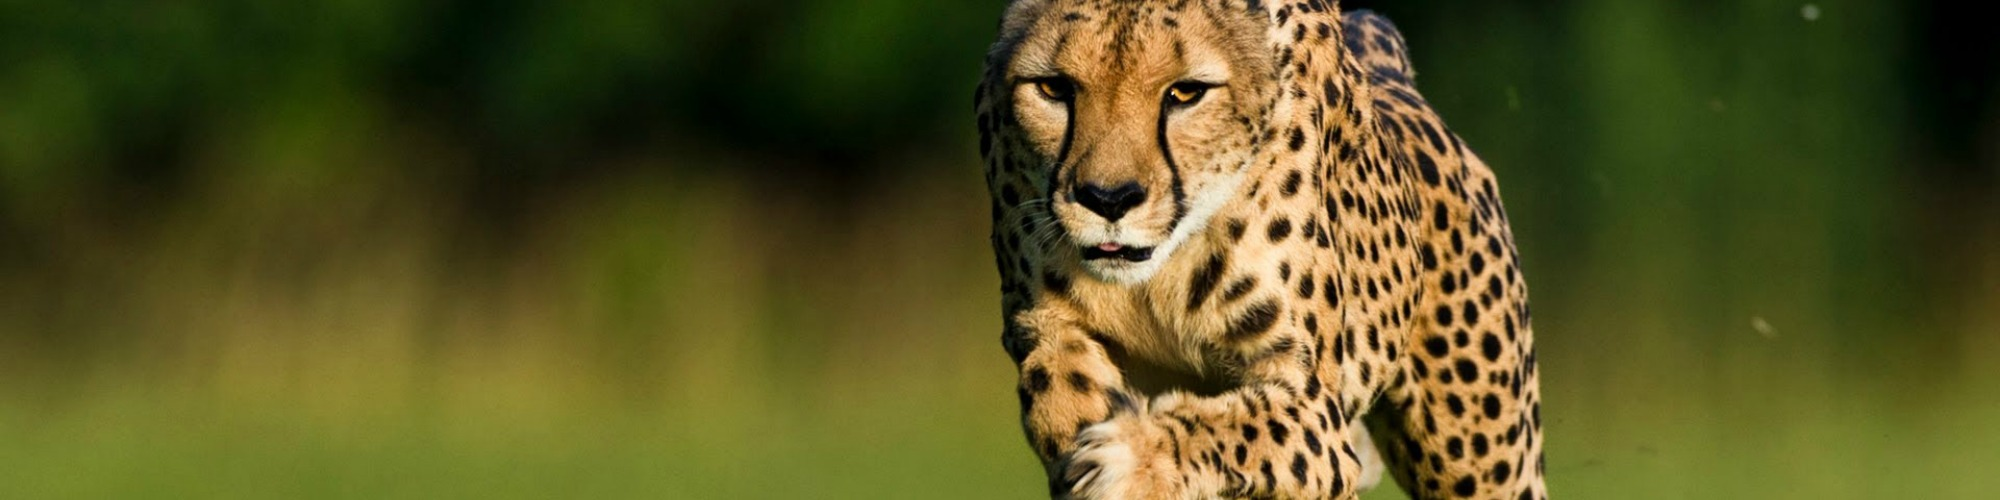 Cheetah header